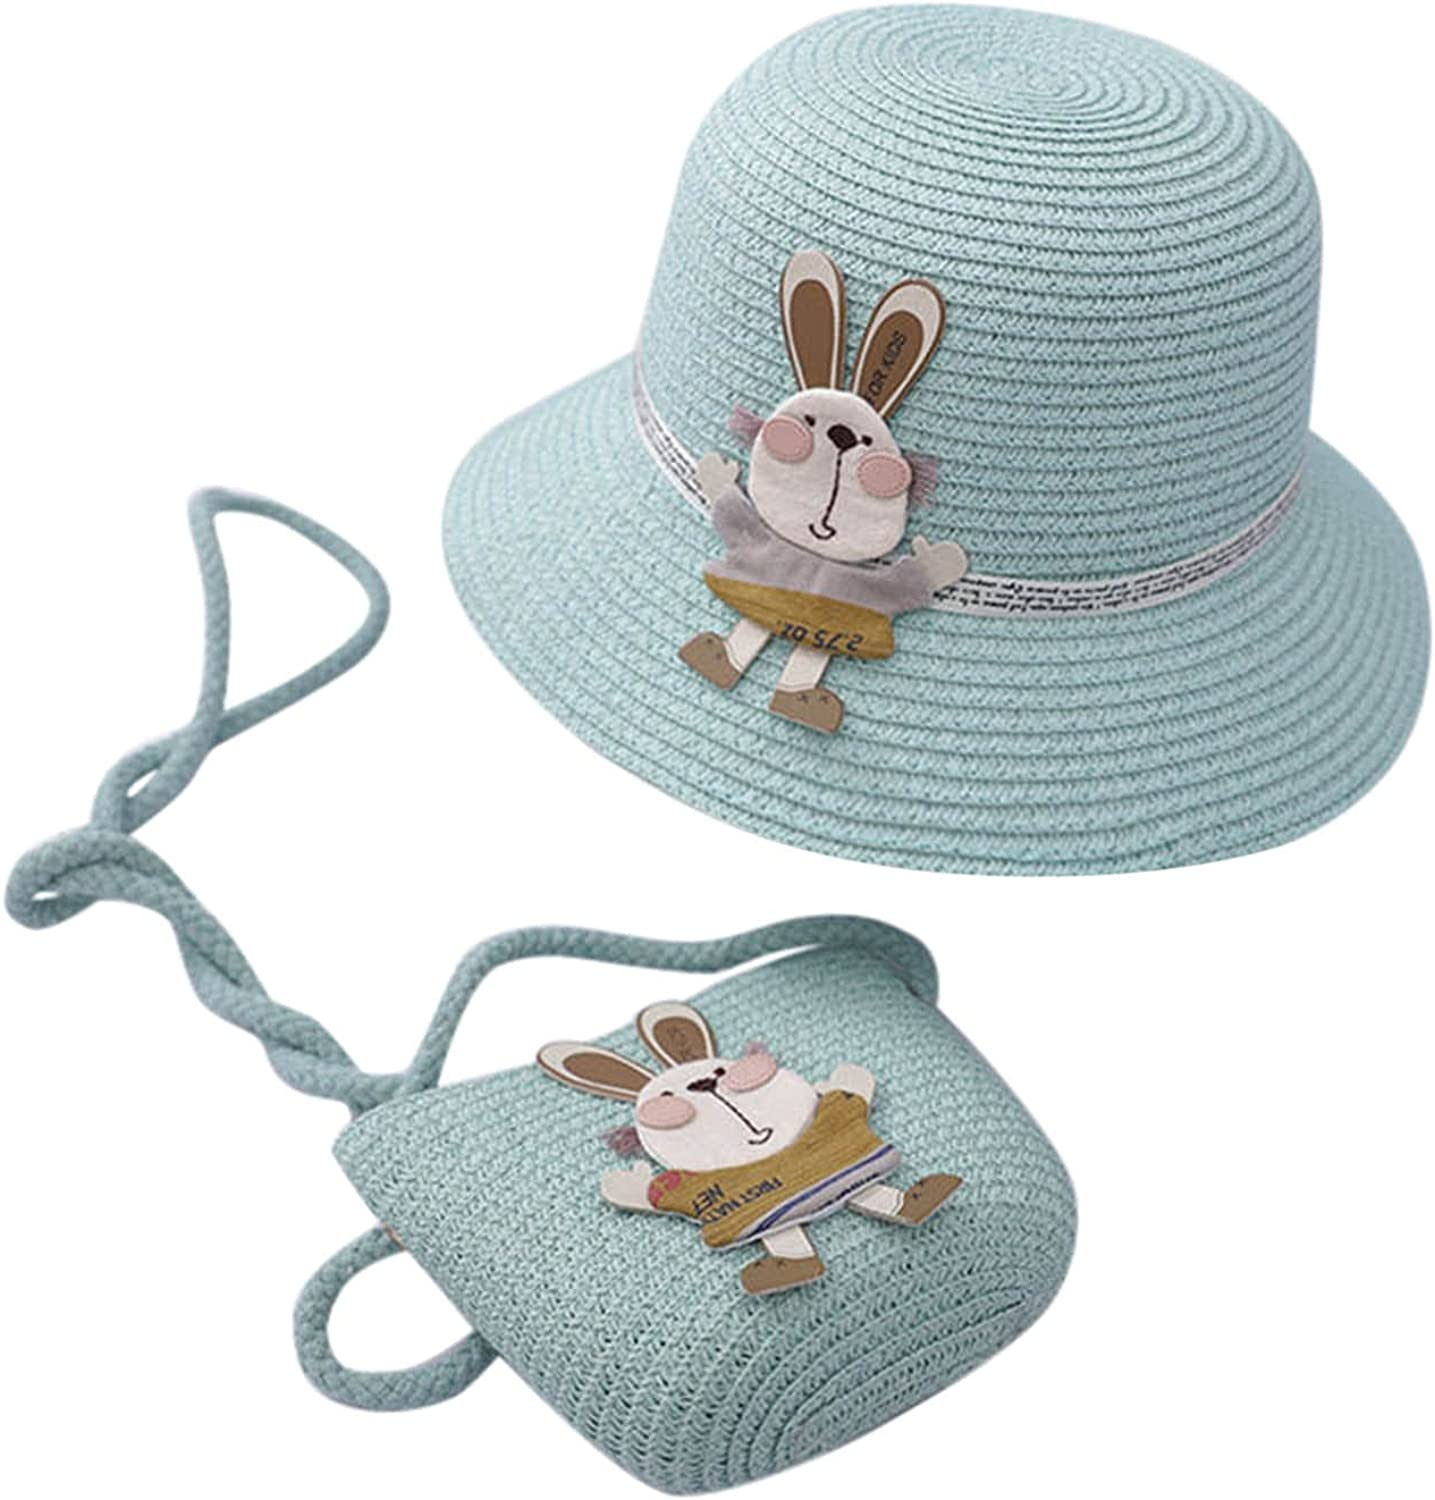 Kids Complete Free Shipping Summer Sun Hat Wide Brim Girls Buck UV Gorgeous Beach for Protection